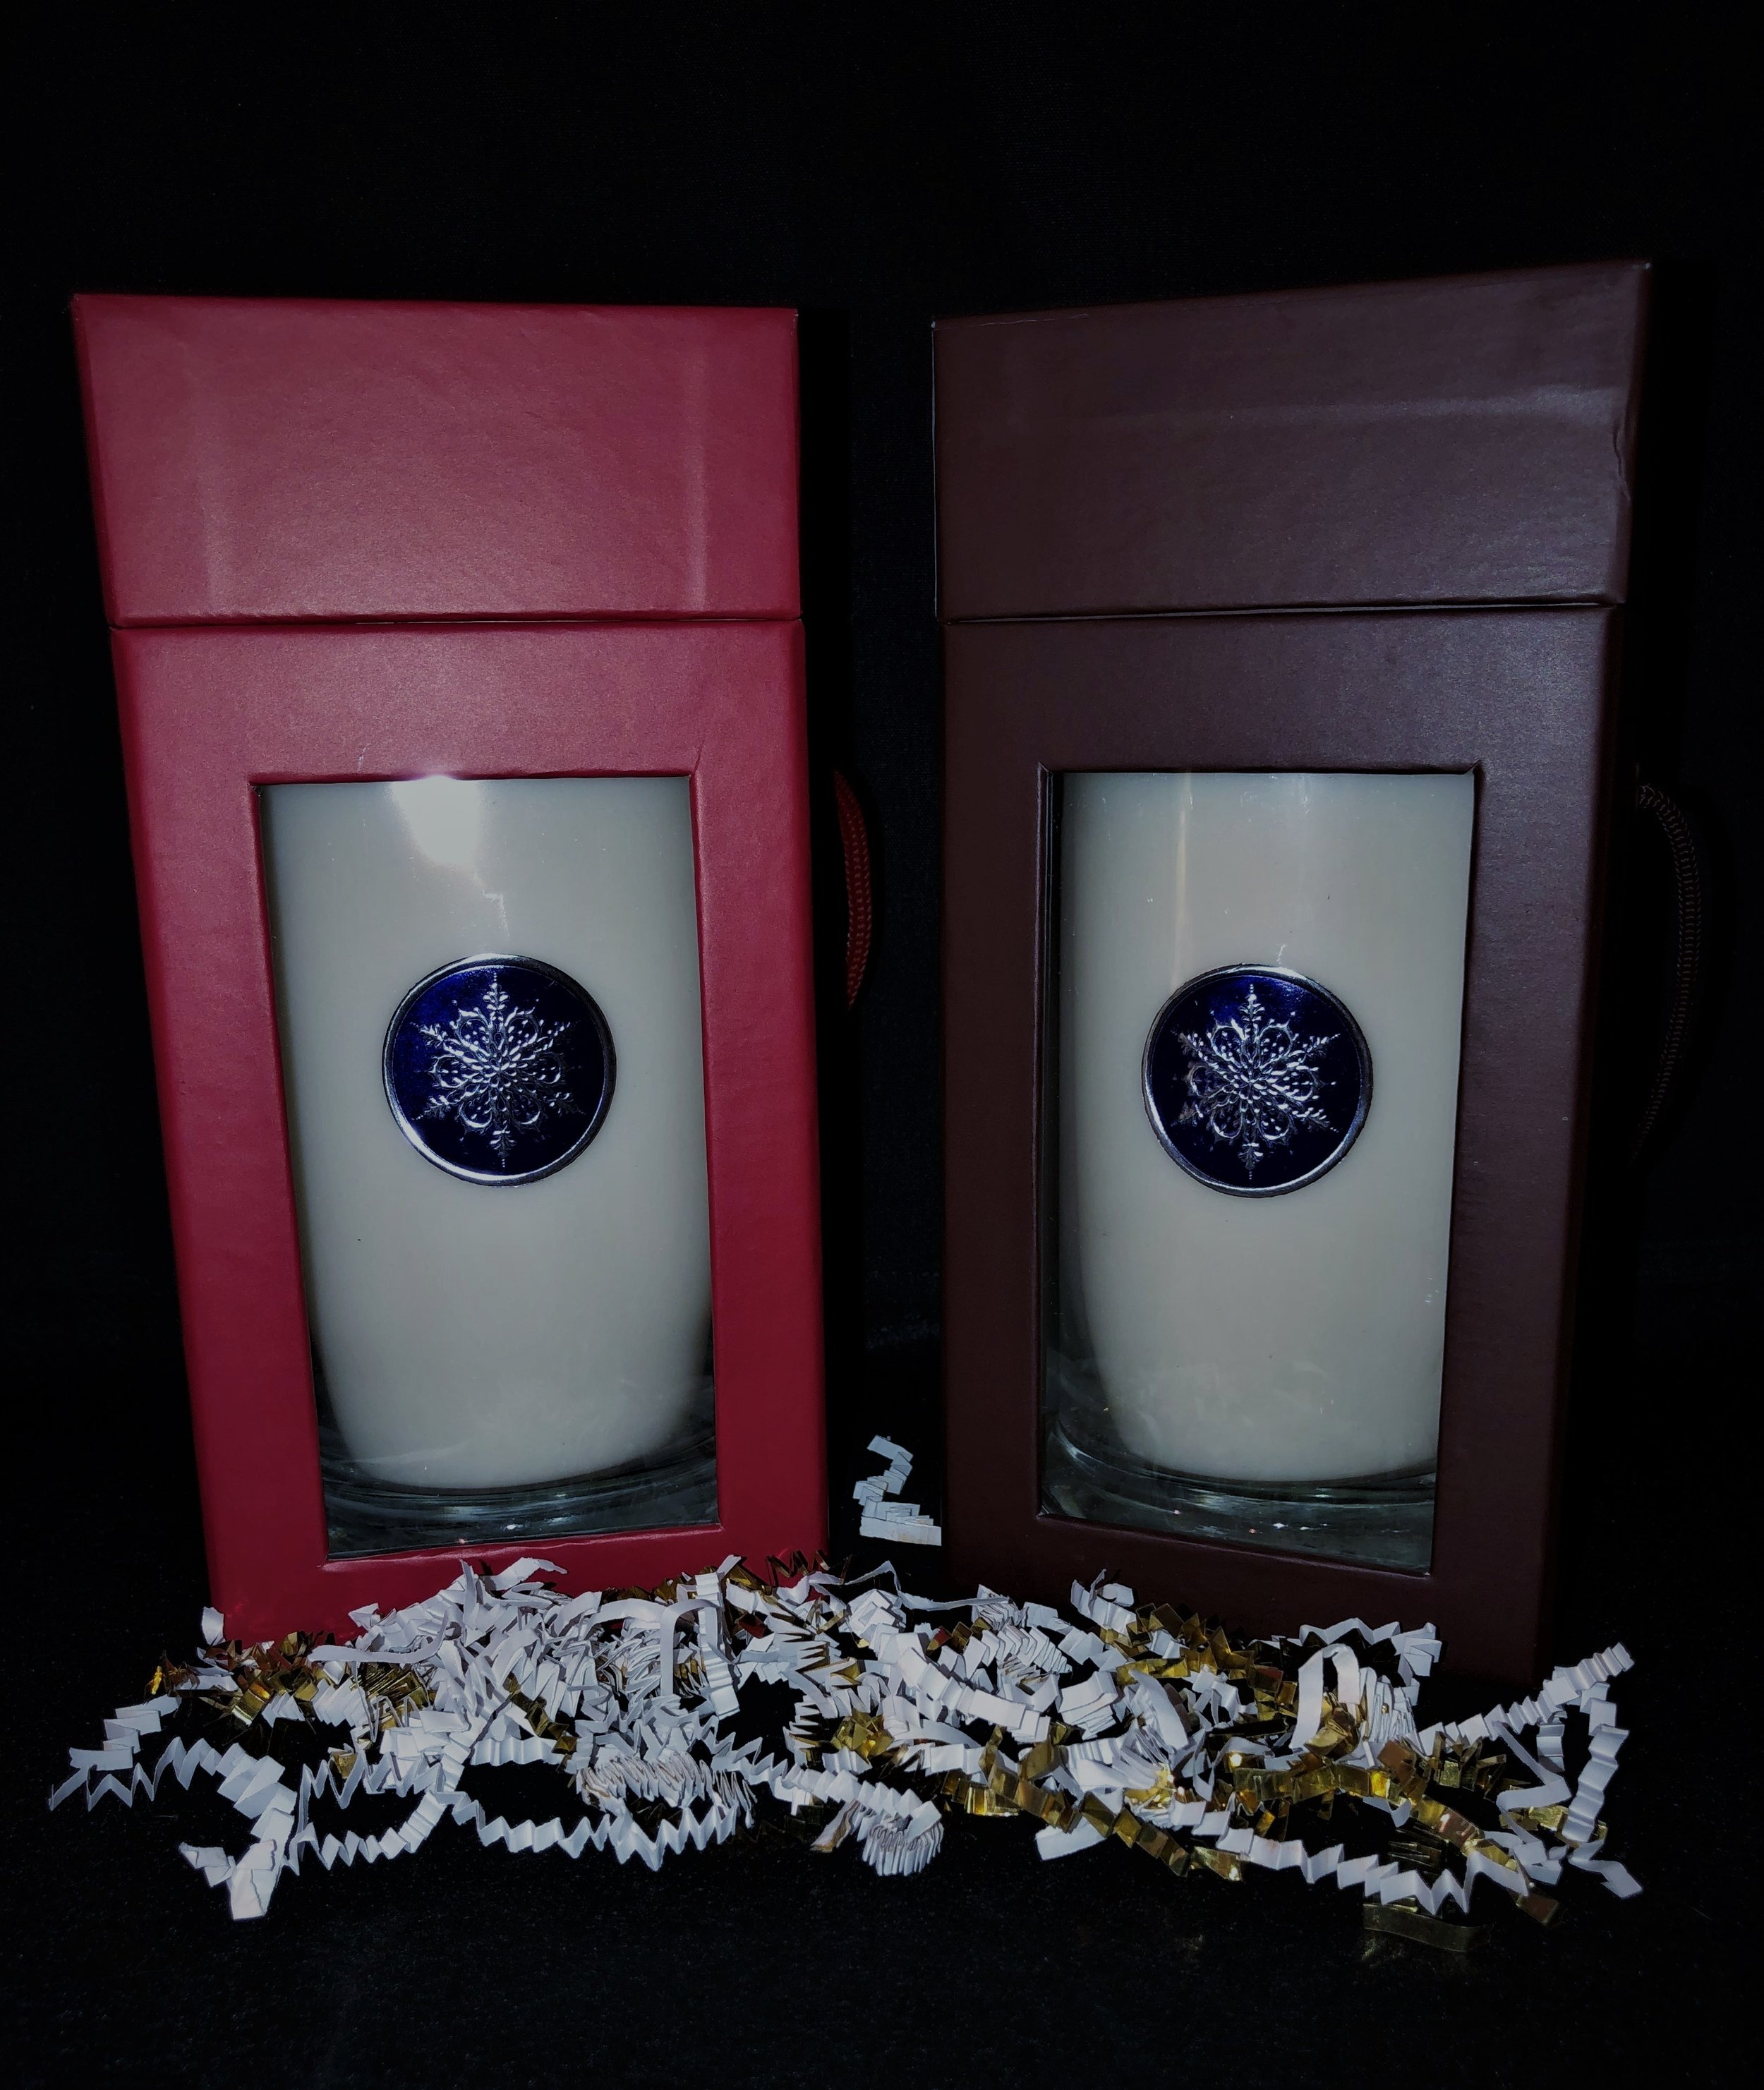 Our 21 oz, 120 hour burning candle is an exceptional gift in this beautiful box. Candle can be natural or dyed with your choice of fragrance per 6 candles. Boxes come in Red or Espresso. Price each is $27.00.